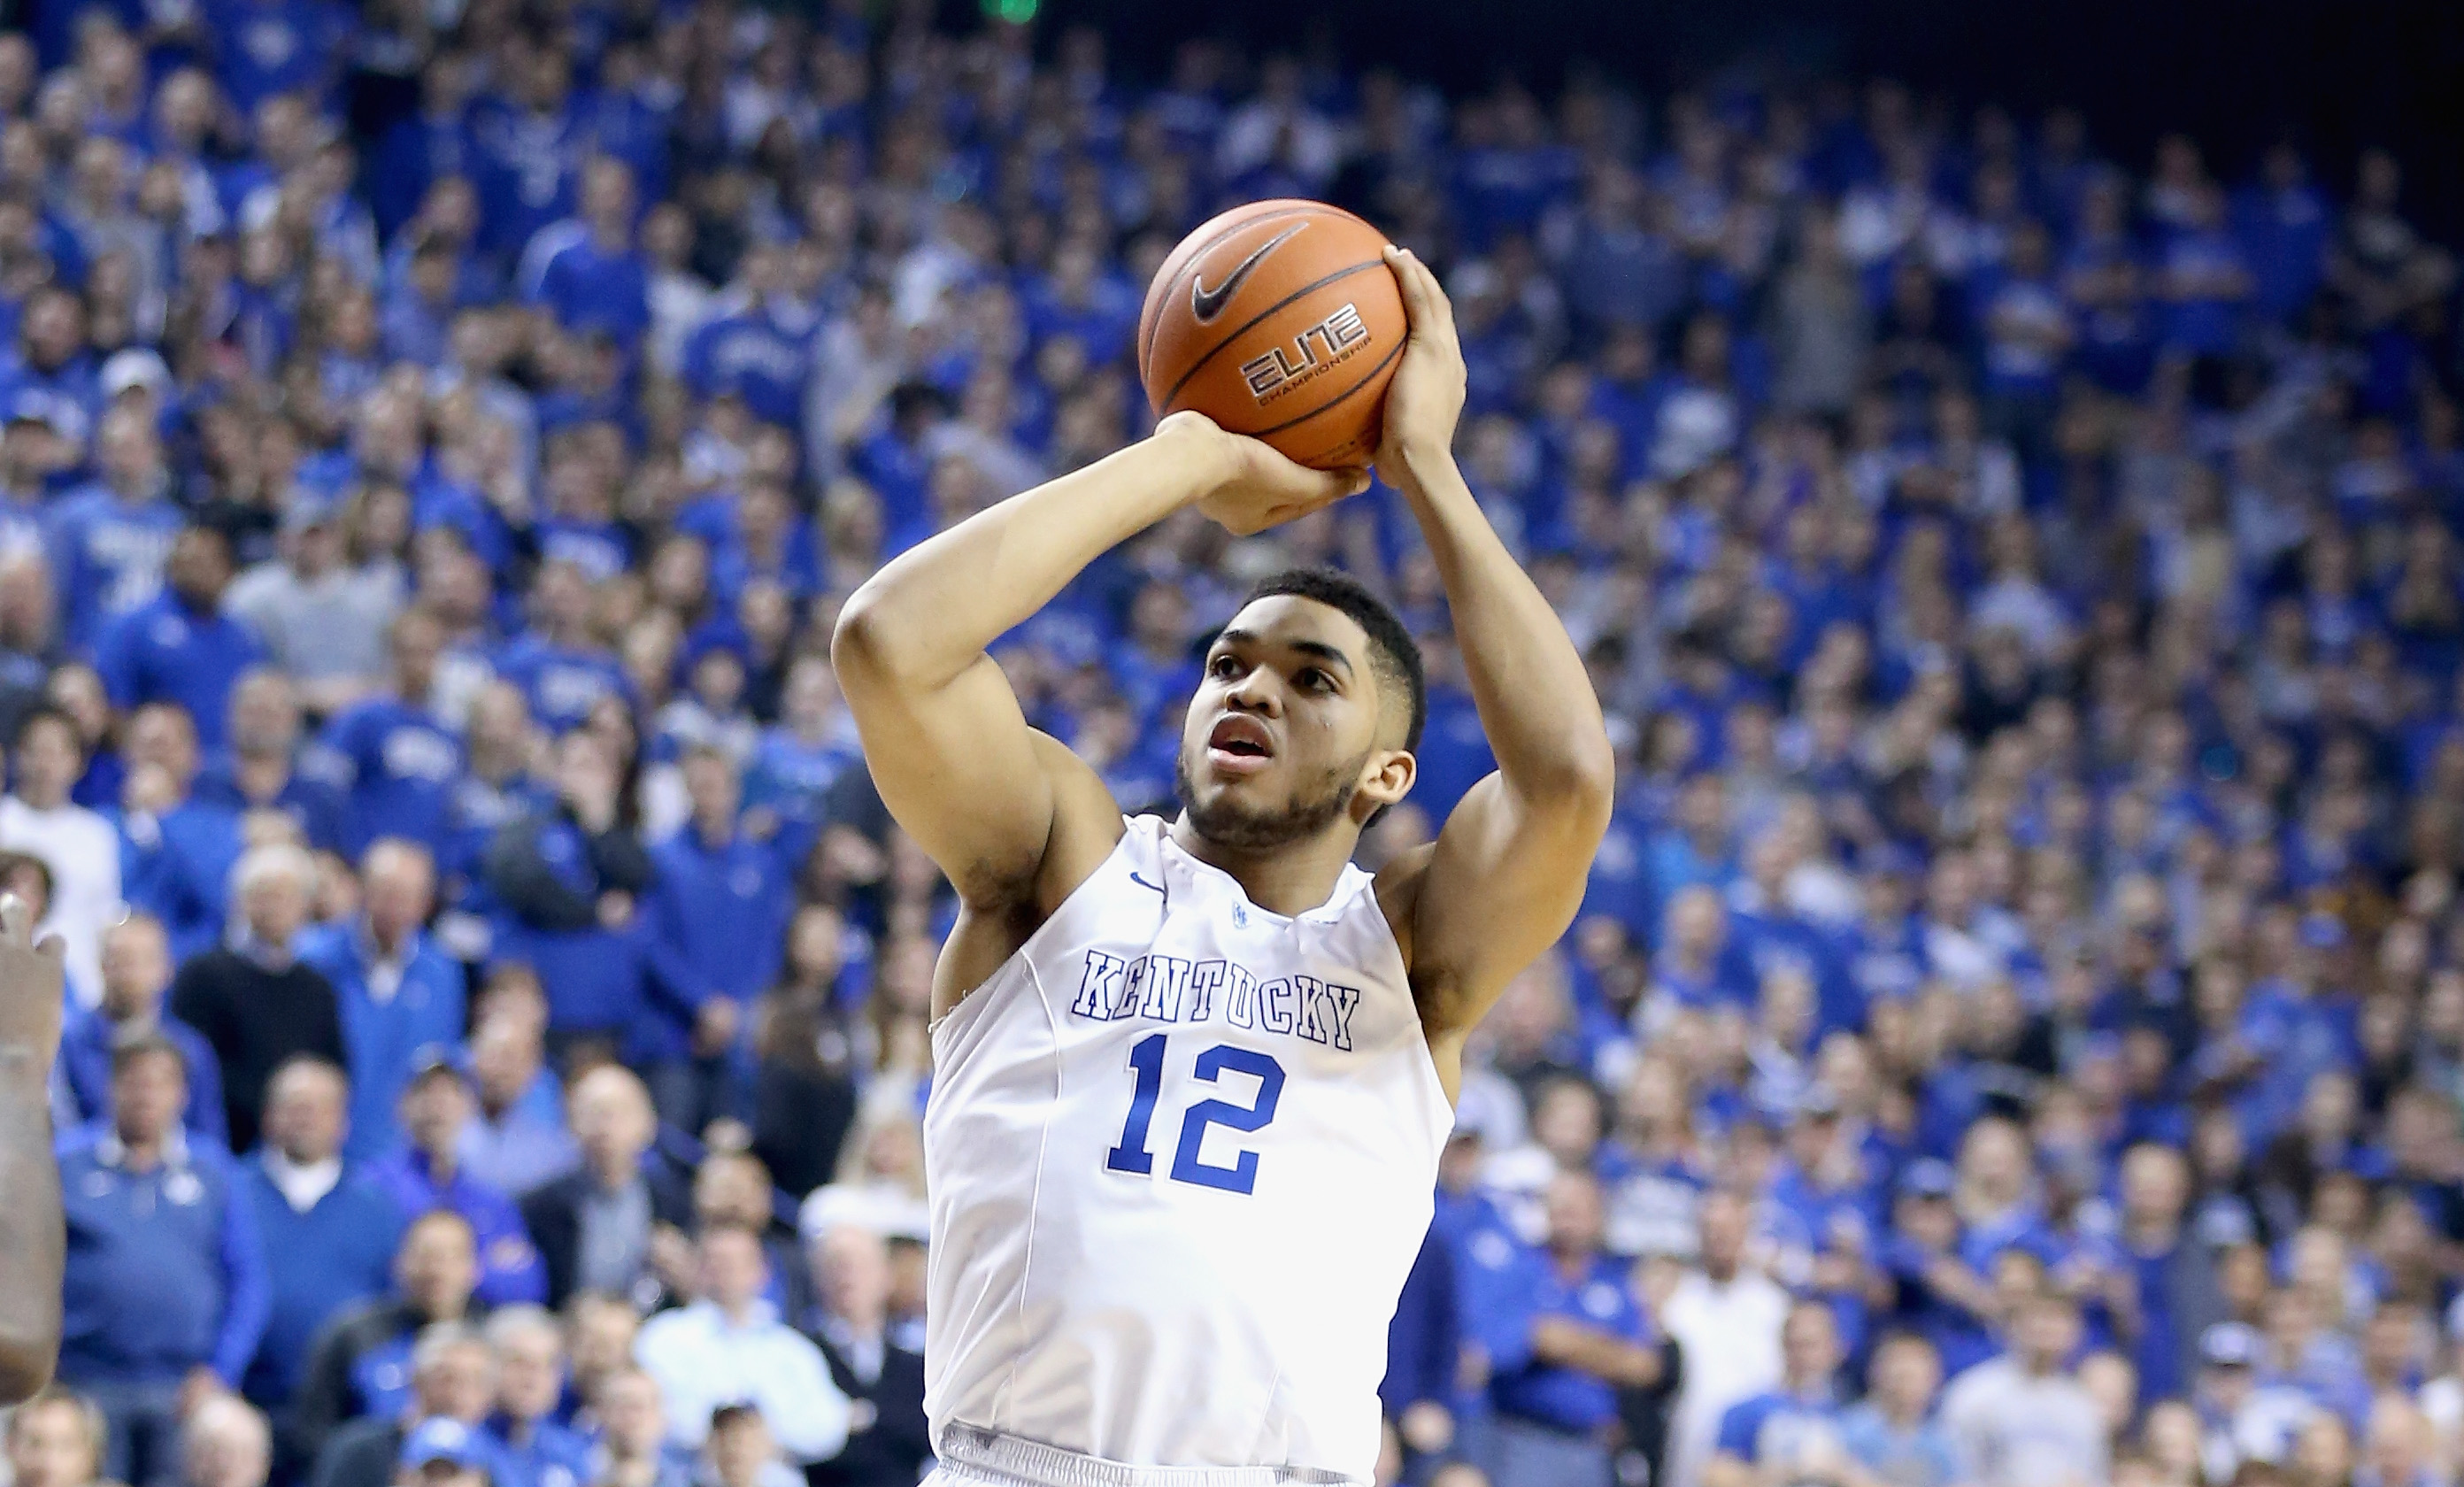 Kentucky forward Karl-Anthony Towns is widely expected to be a top pick in Thursday's NBA draft.